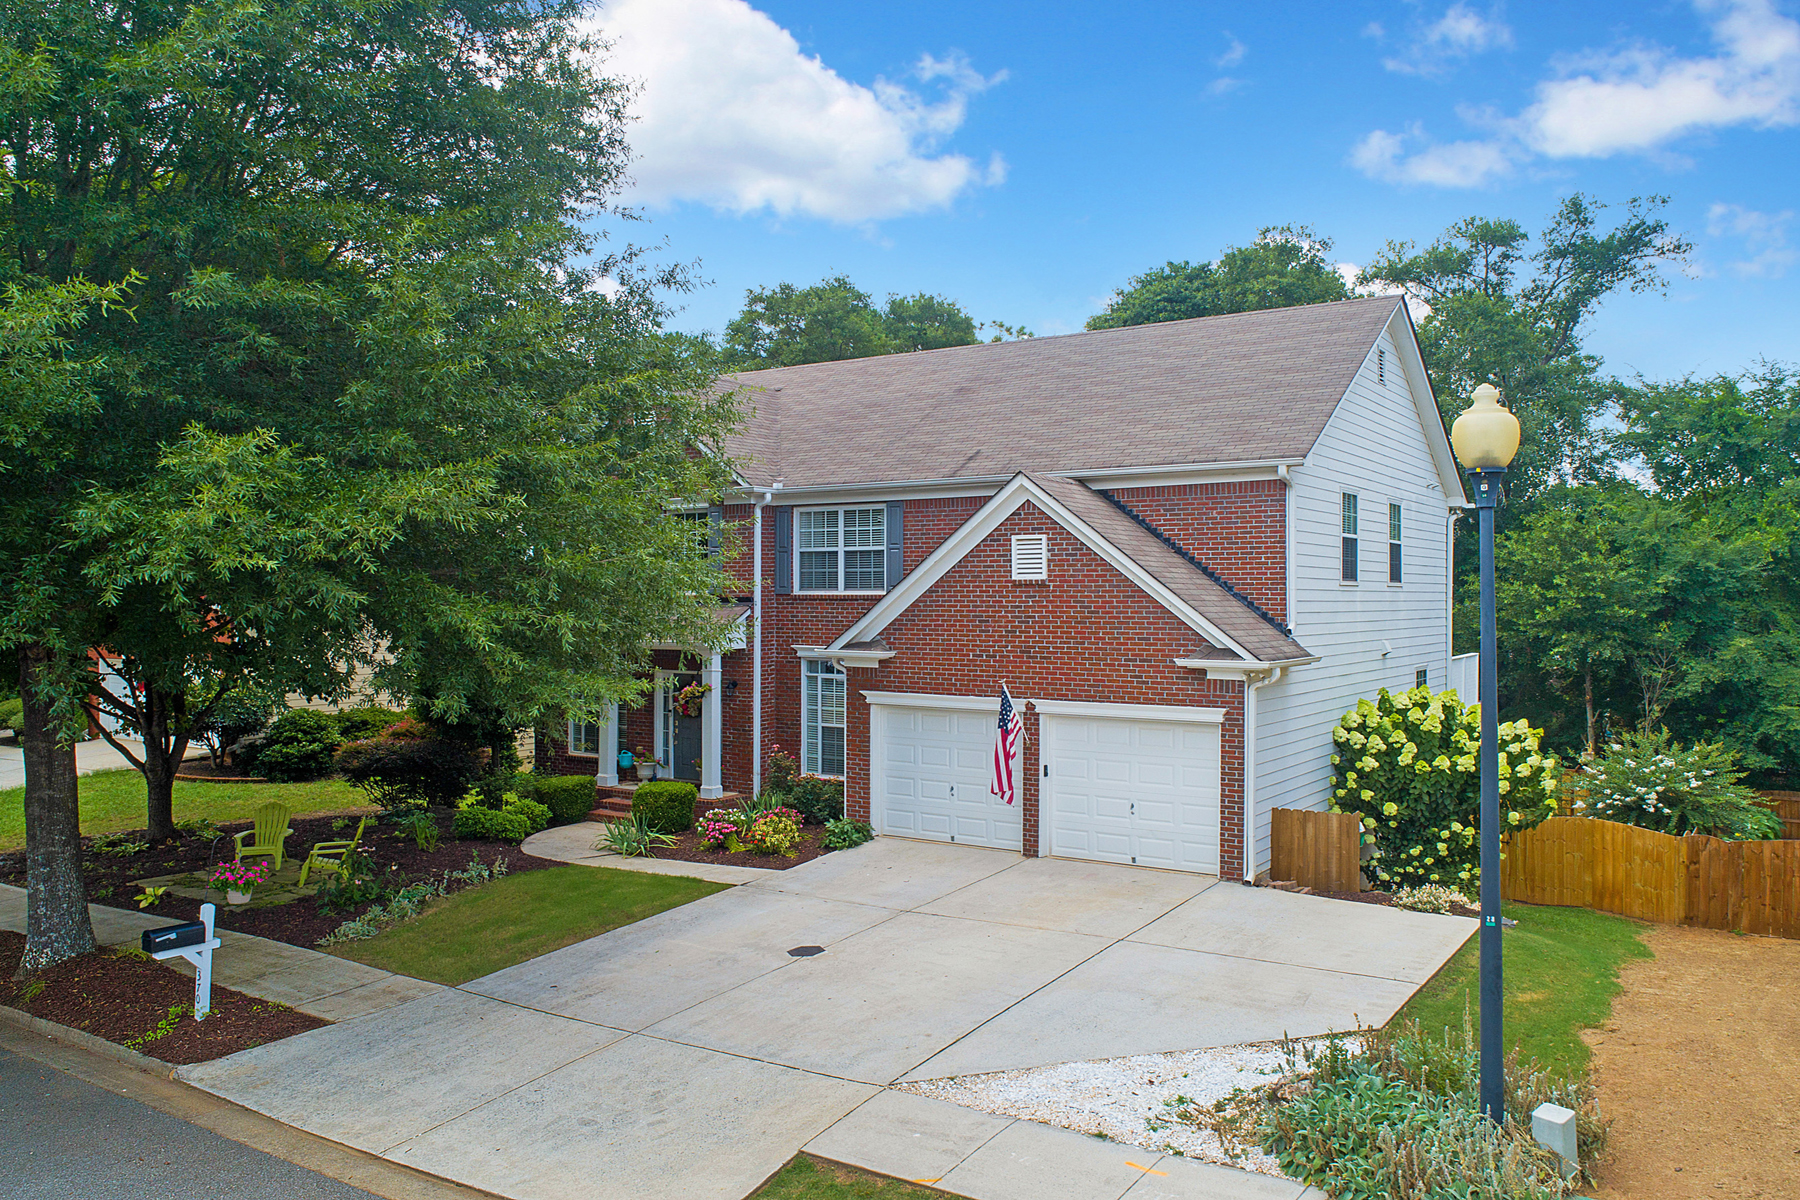 Single Family Home for Sale at Downtown Woodstock Masterpiece 370 Windsong Way Woodstock, Georgia 30188 United States